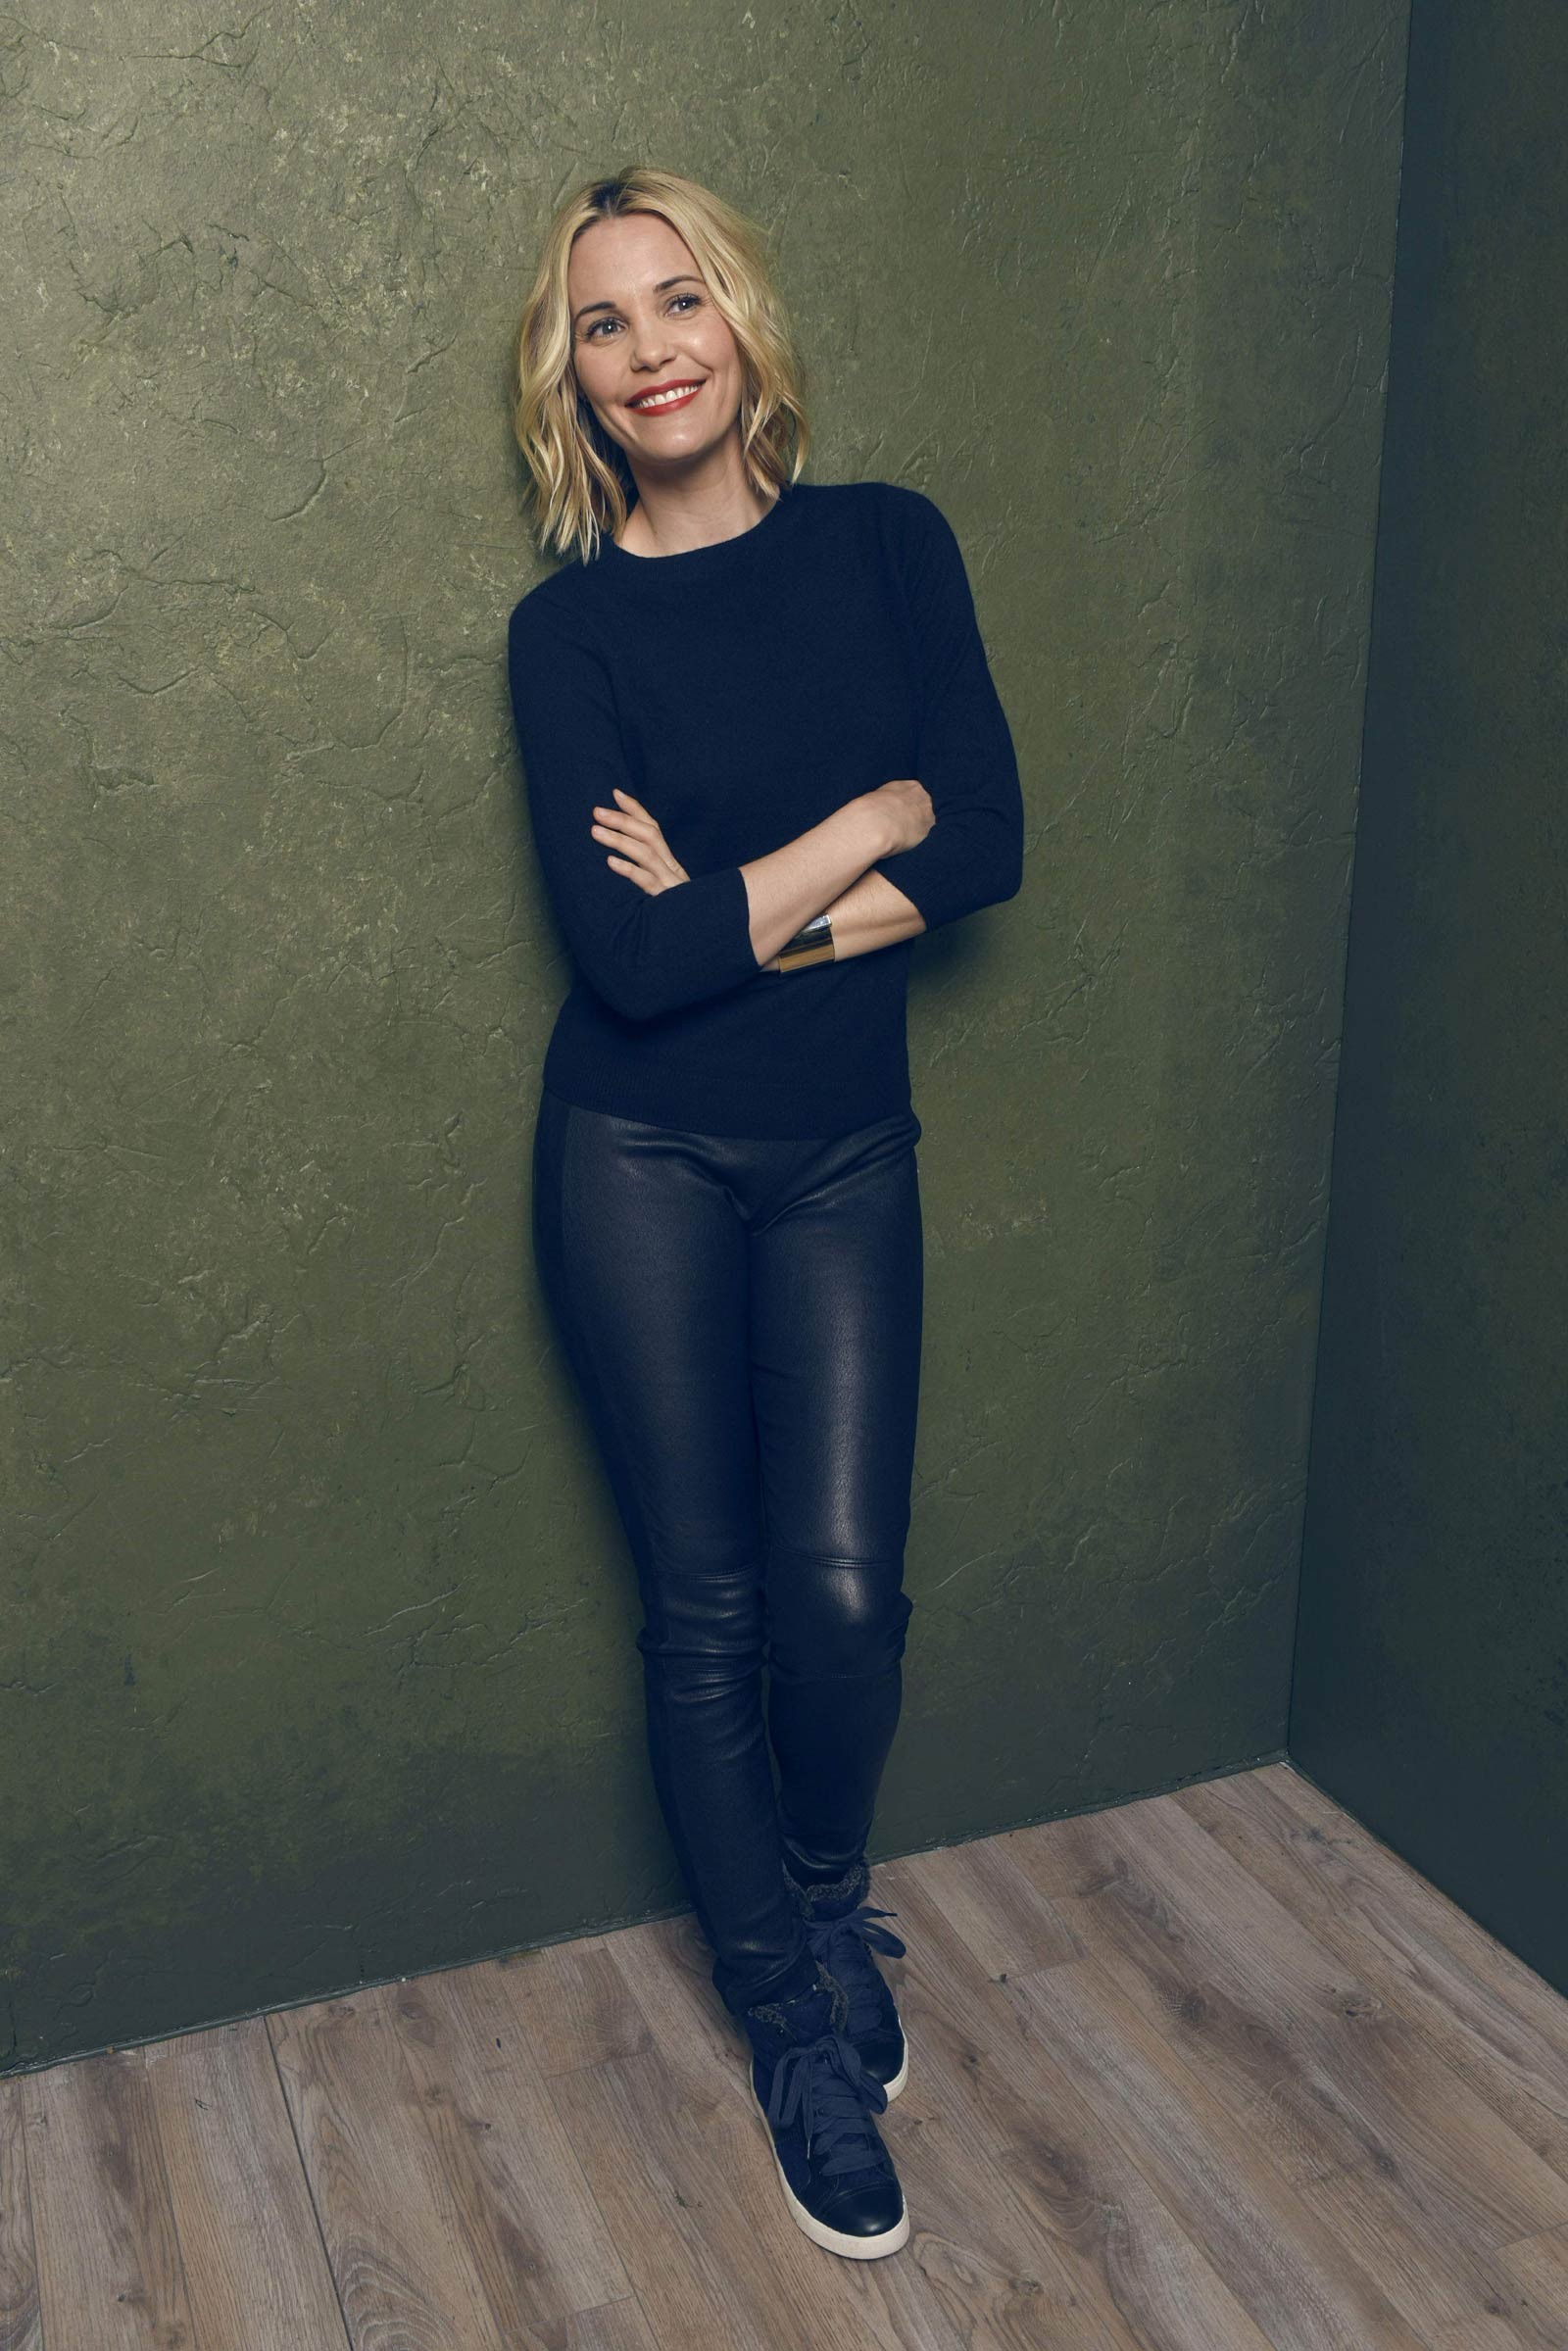 Leslie Bibb Don Verdean Portraits At Sundance Leather